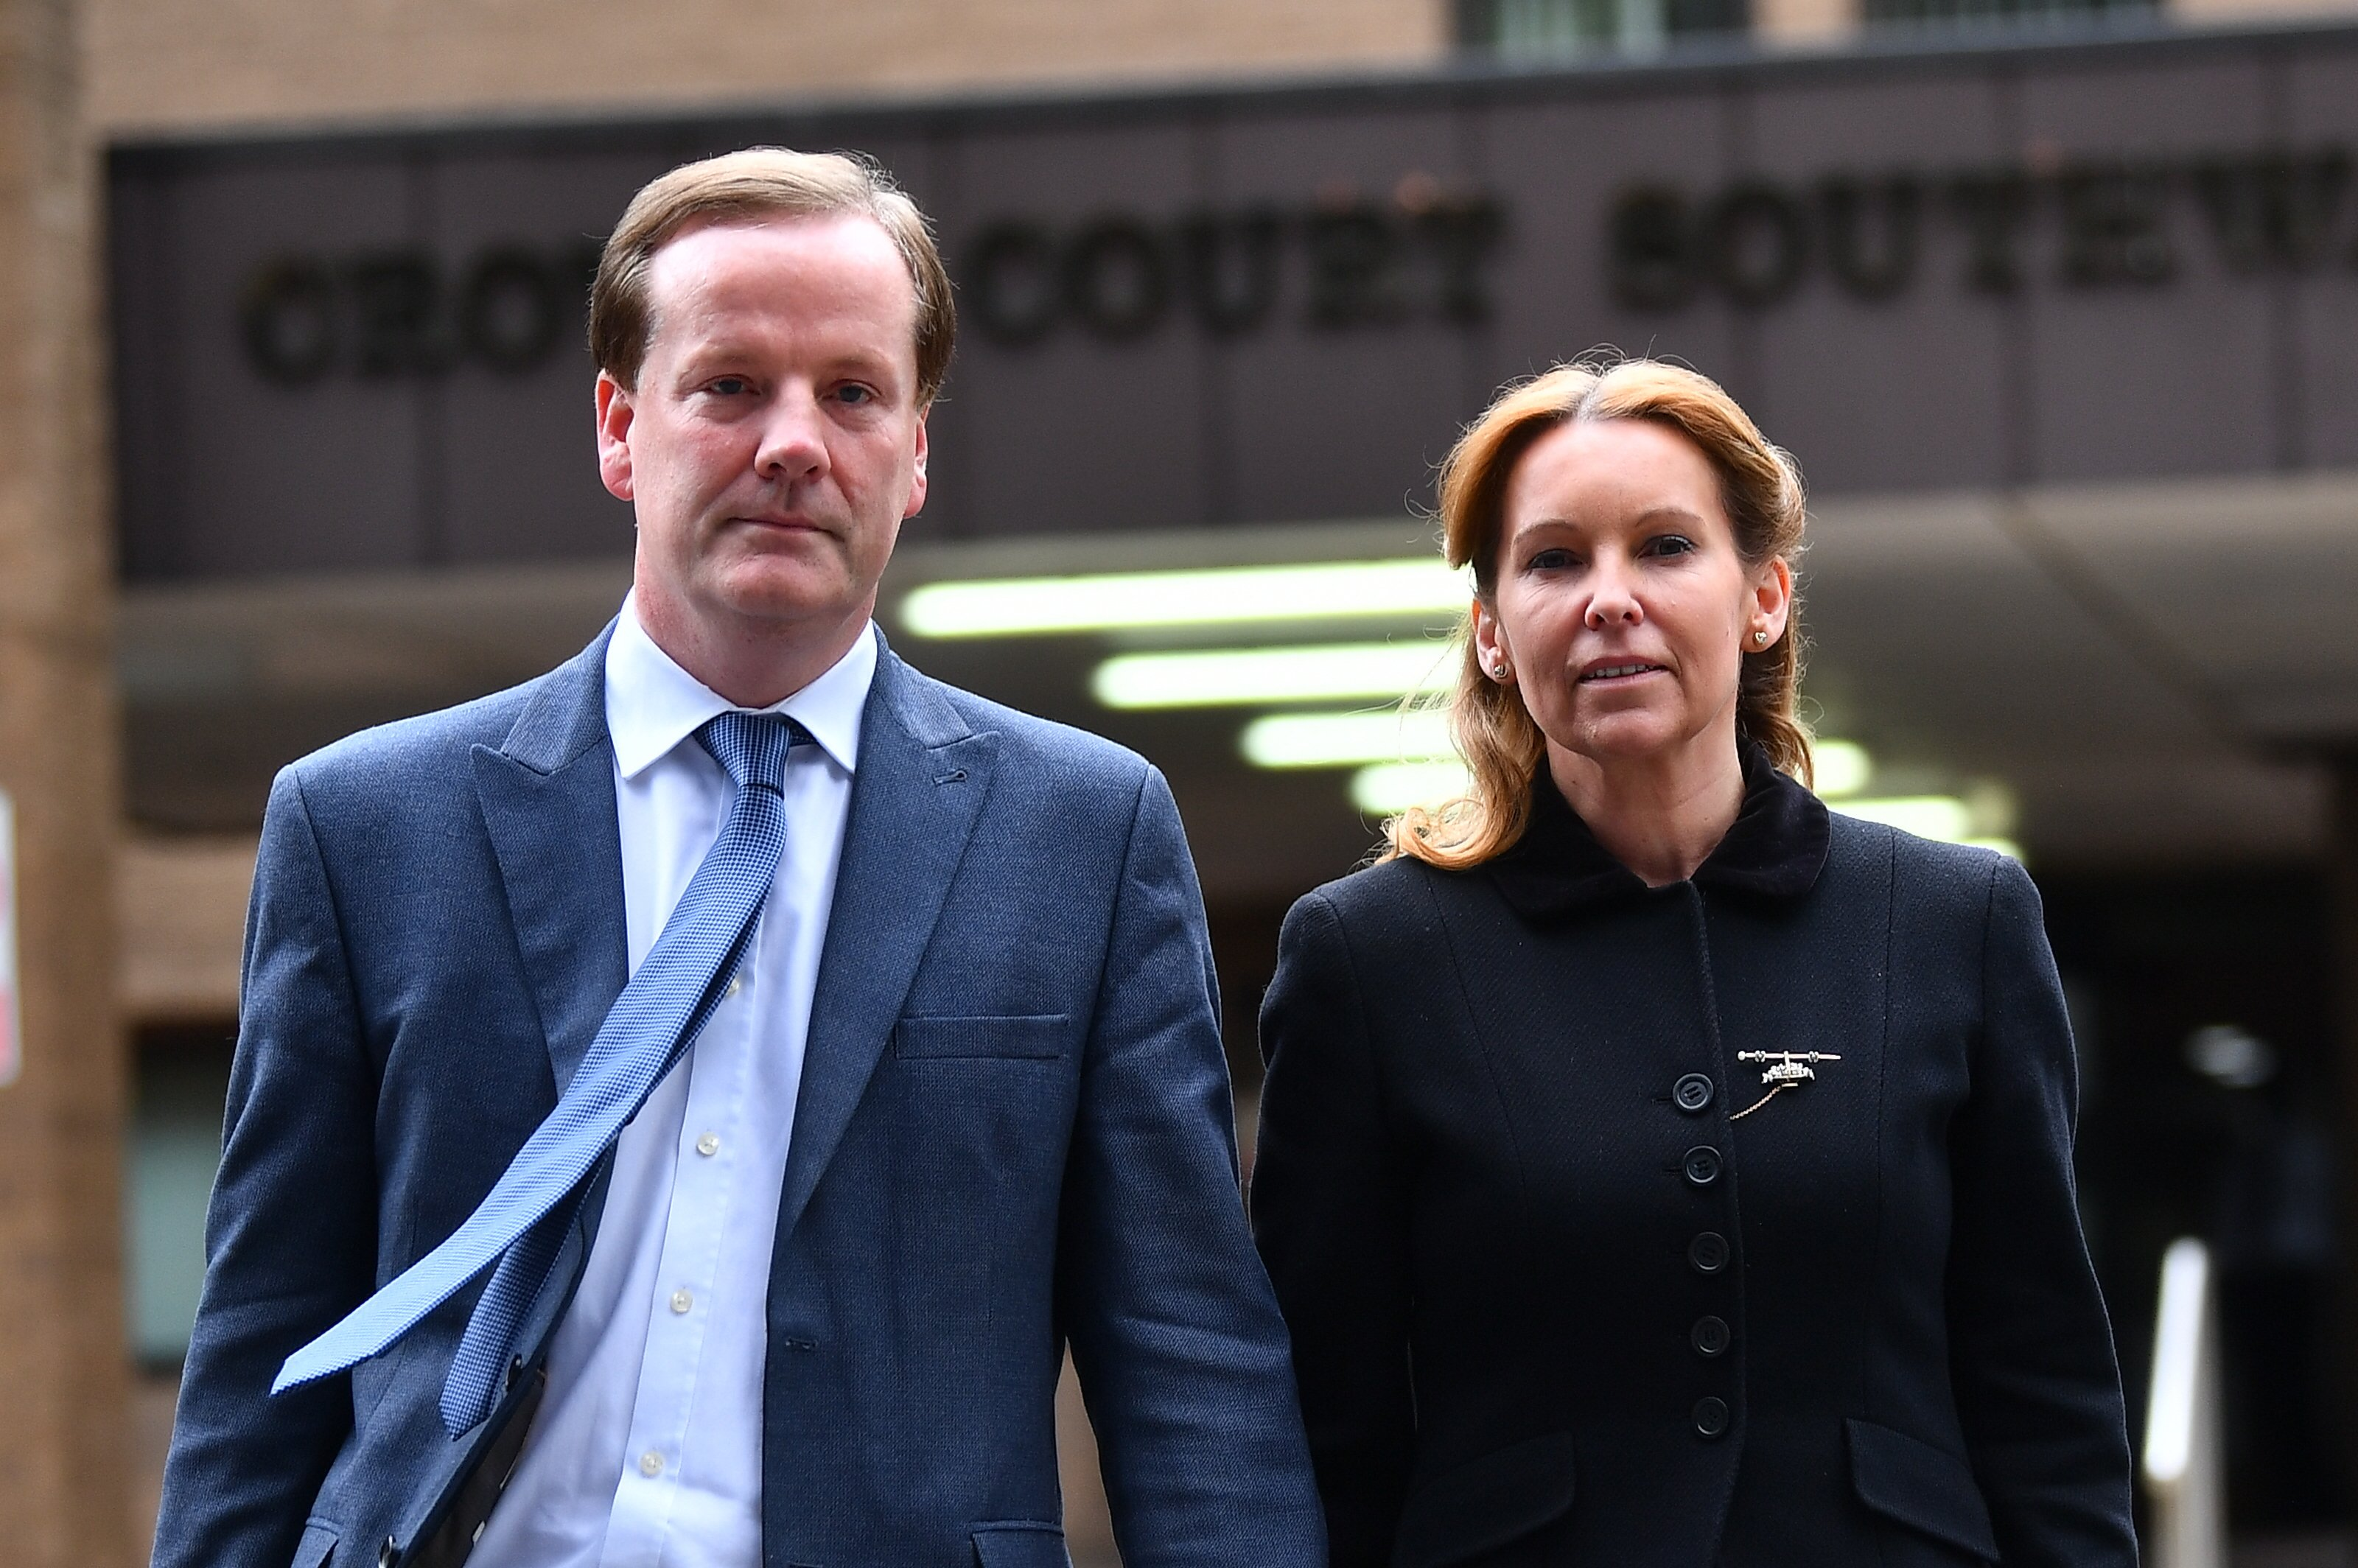 Elphicke paid alleged victim 'in small amounts to prevent wife finding out'